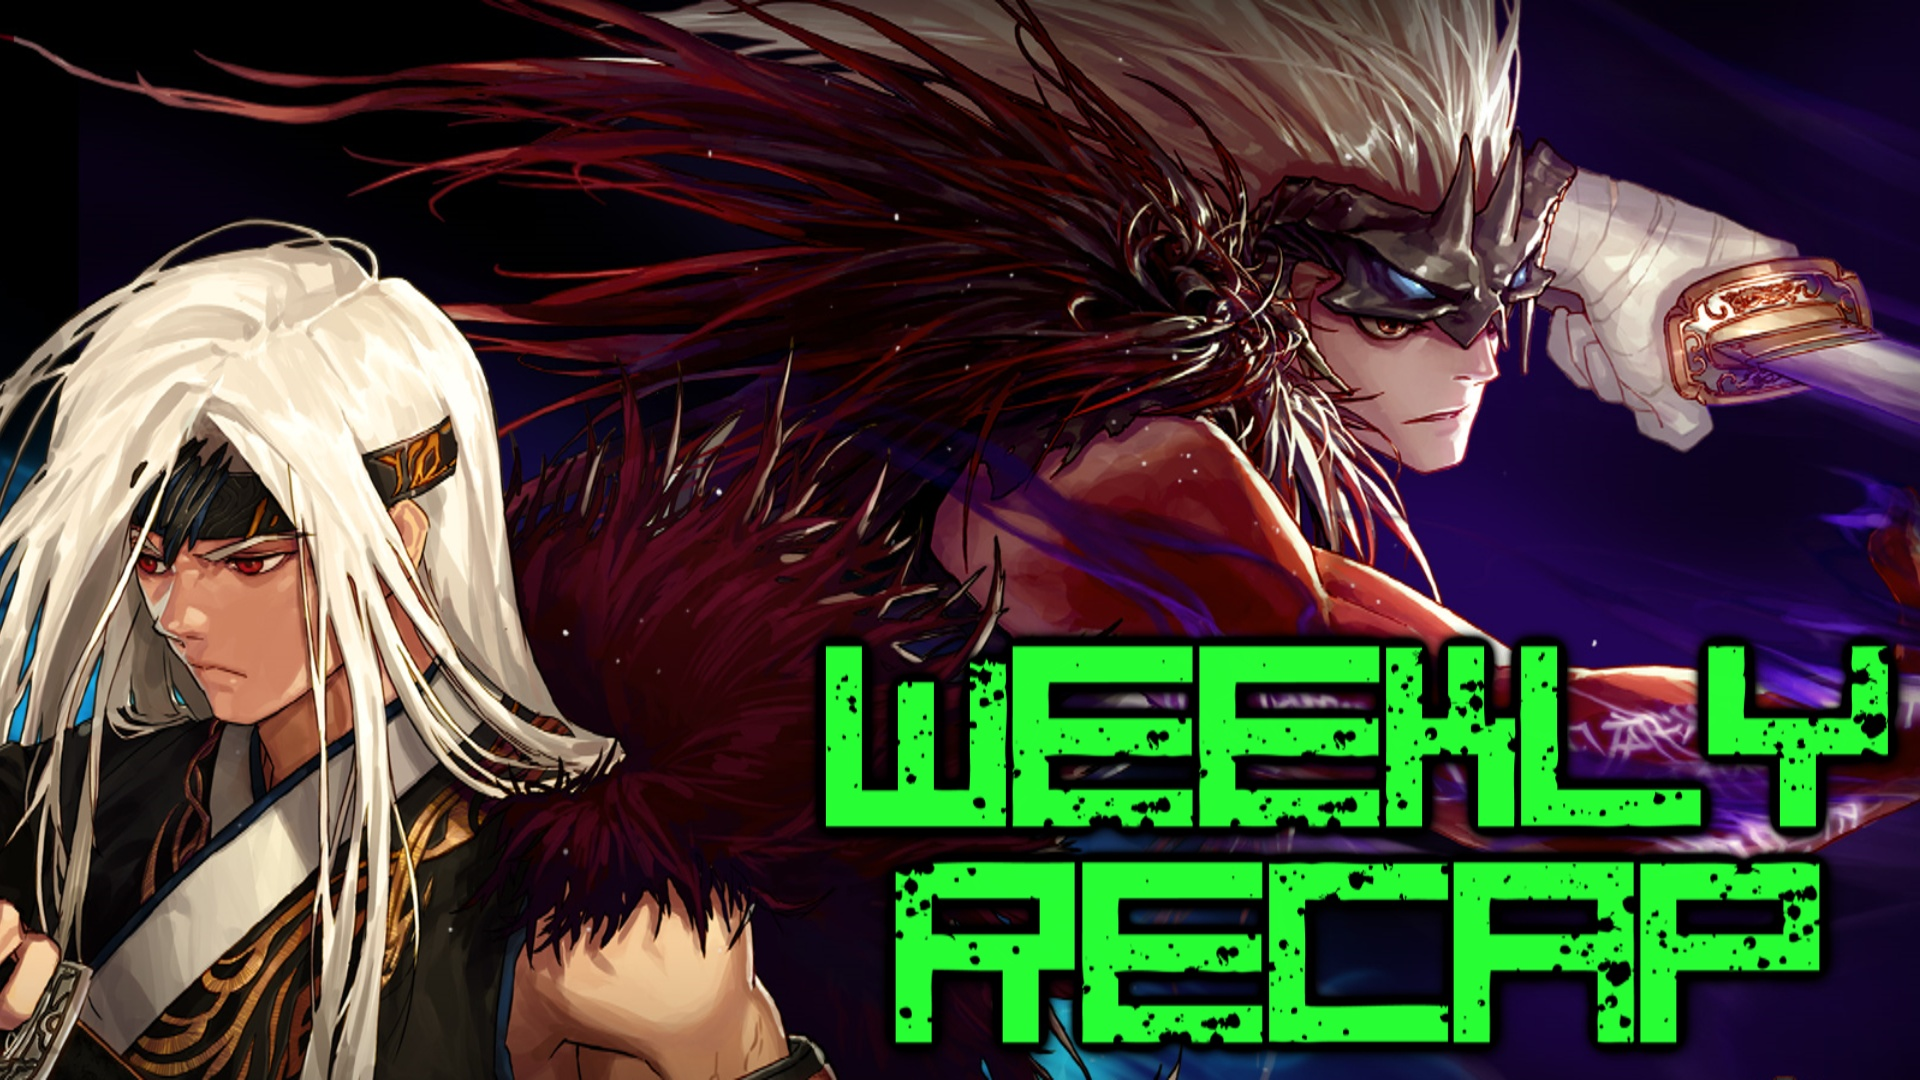 MMOHuts Weekly Recap #274 Jan. 25th - DFO, Firefall, Black Desert & More!